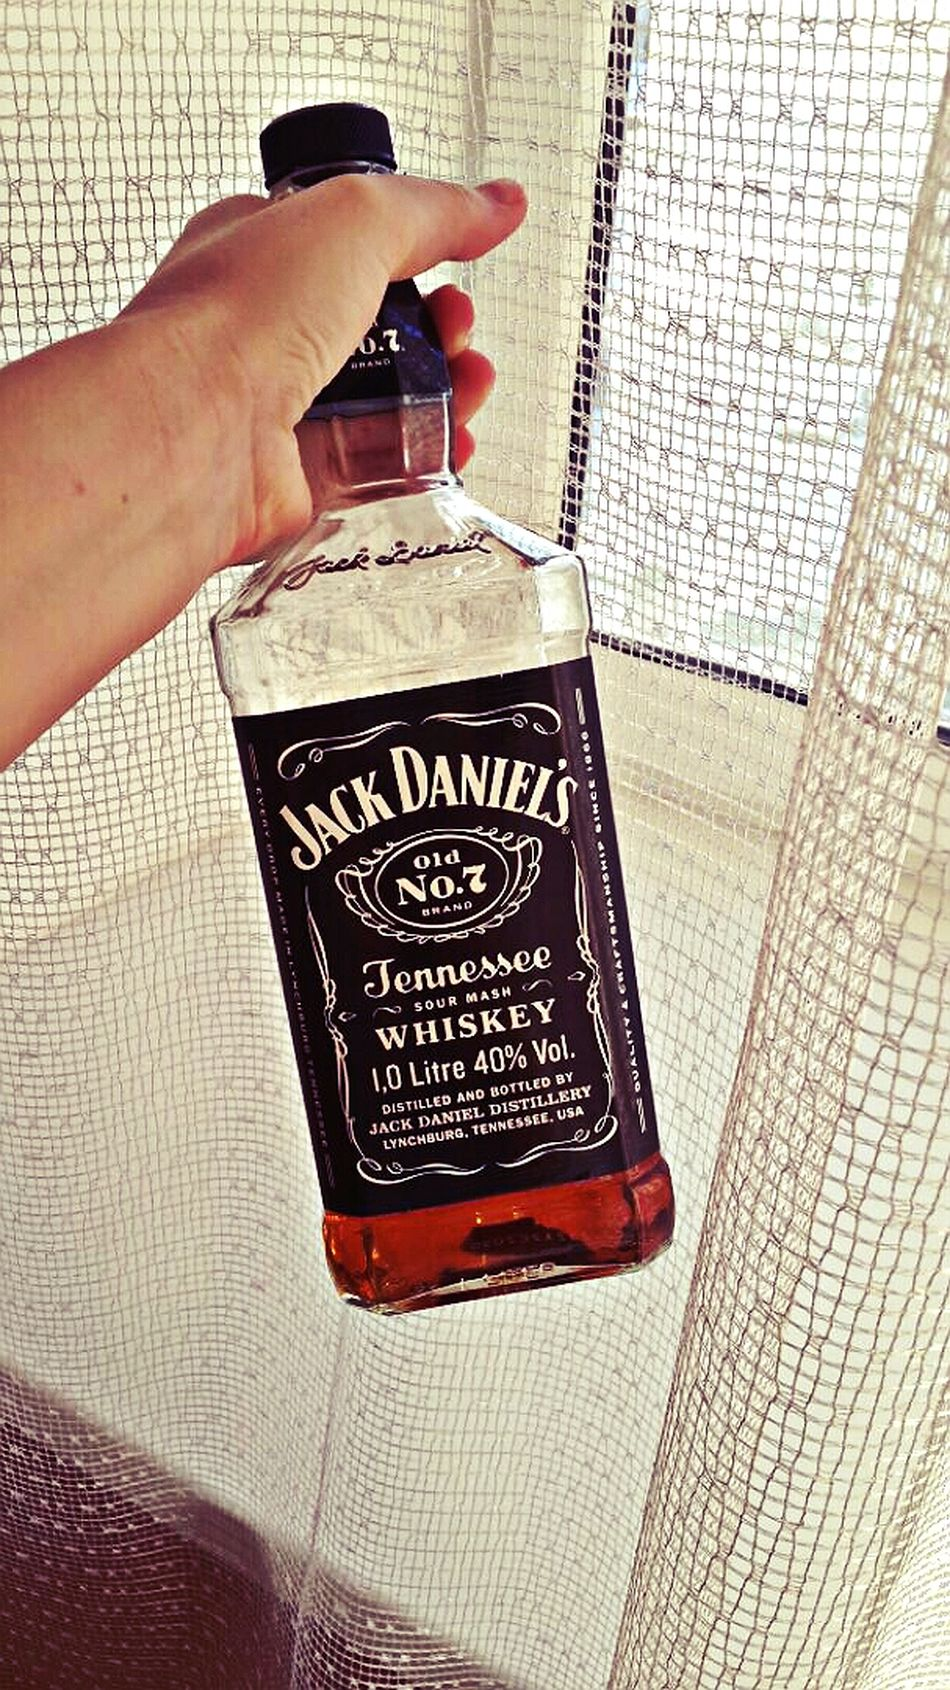 People Day Carnival Crowds And Details I Love It ❤ EyeEmNewHere People Photography Relax❤️ Happy People Lieblingsteil Everyday Joy Relaxing Luxury Best Frends Jack Daniels